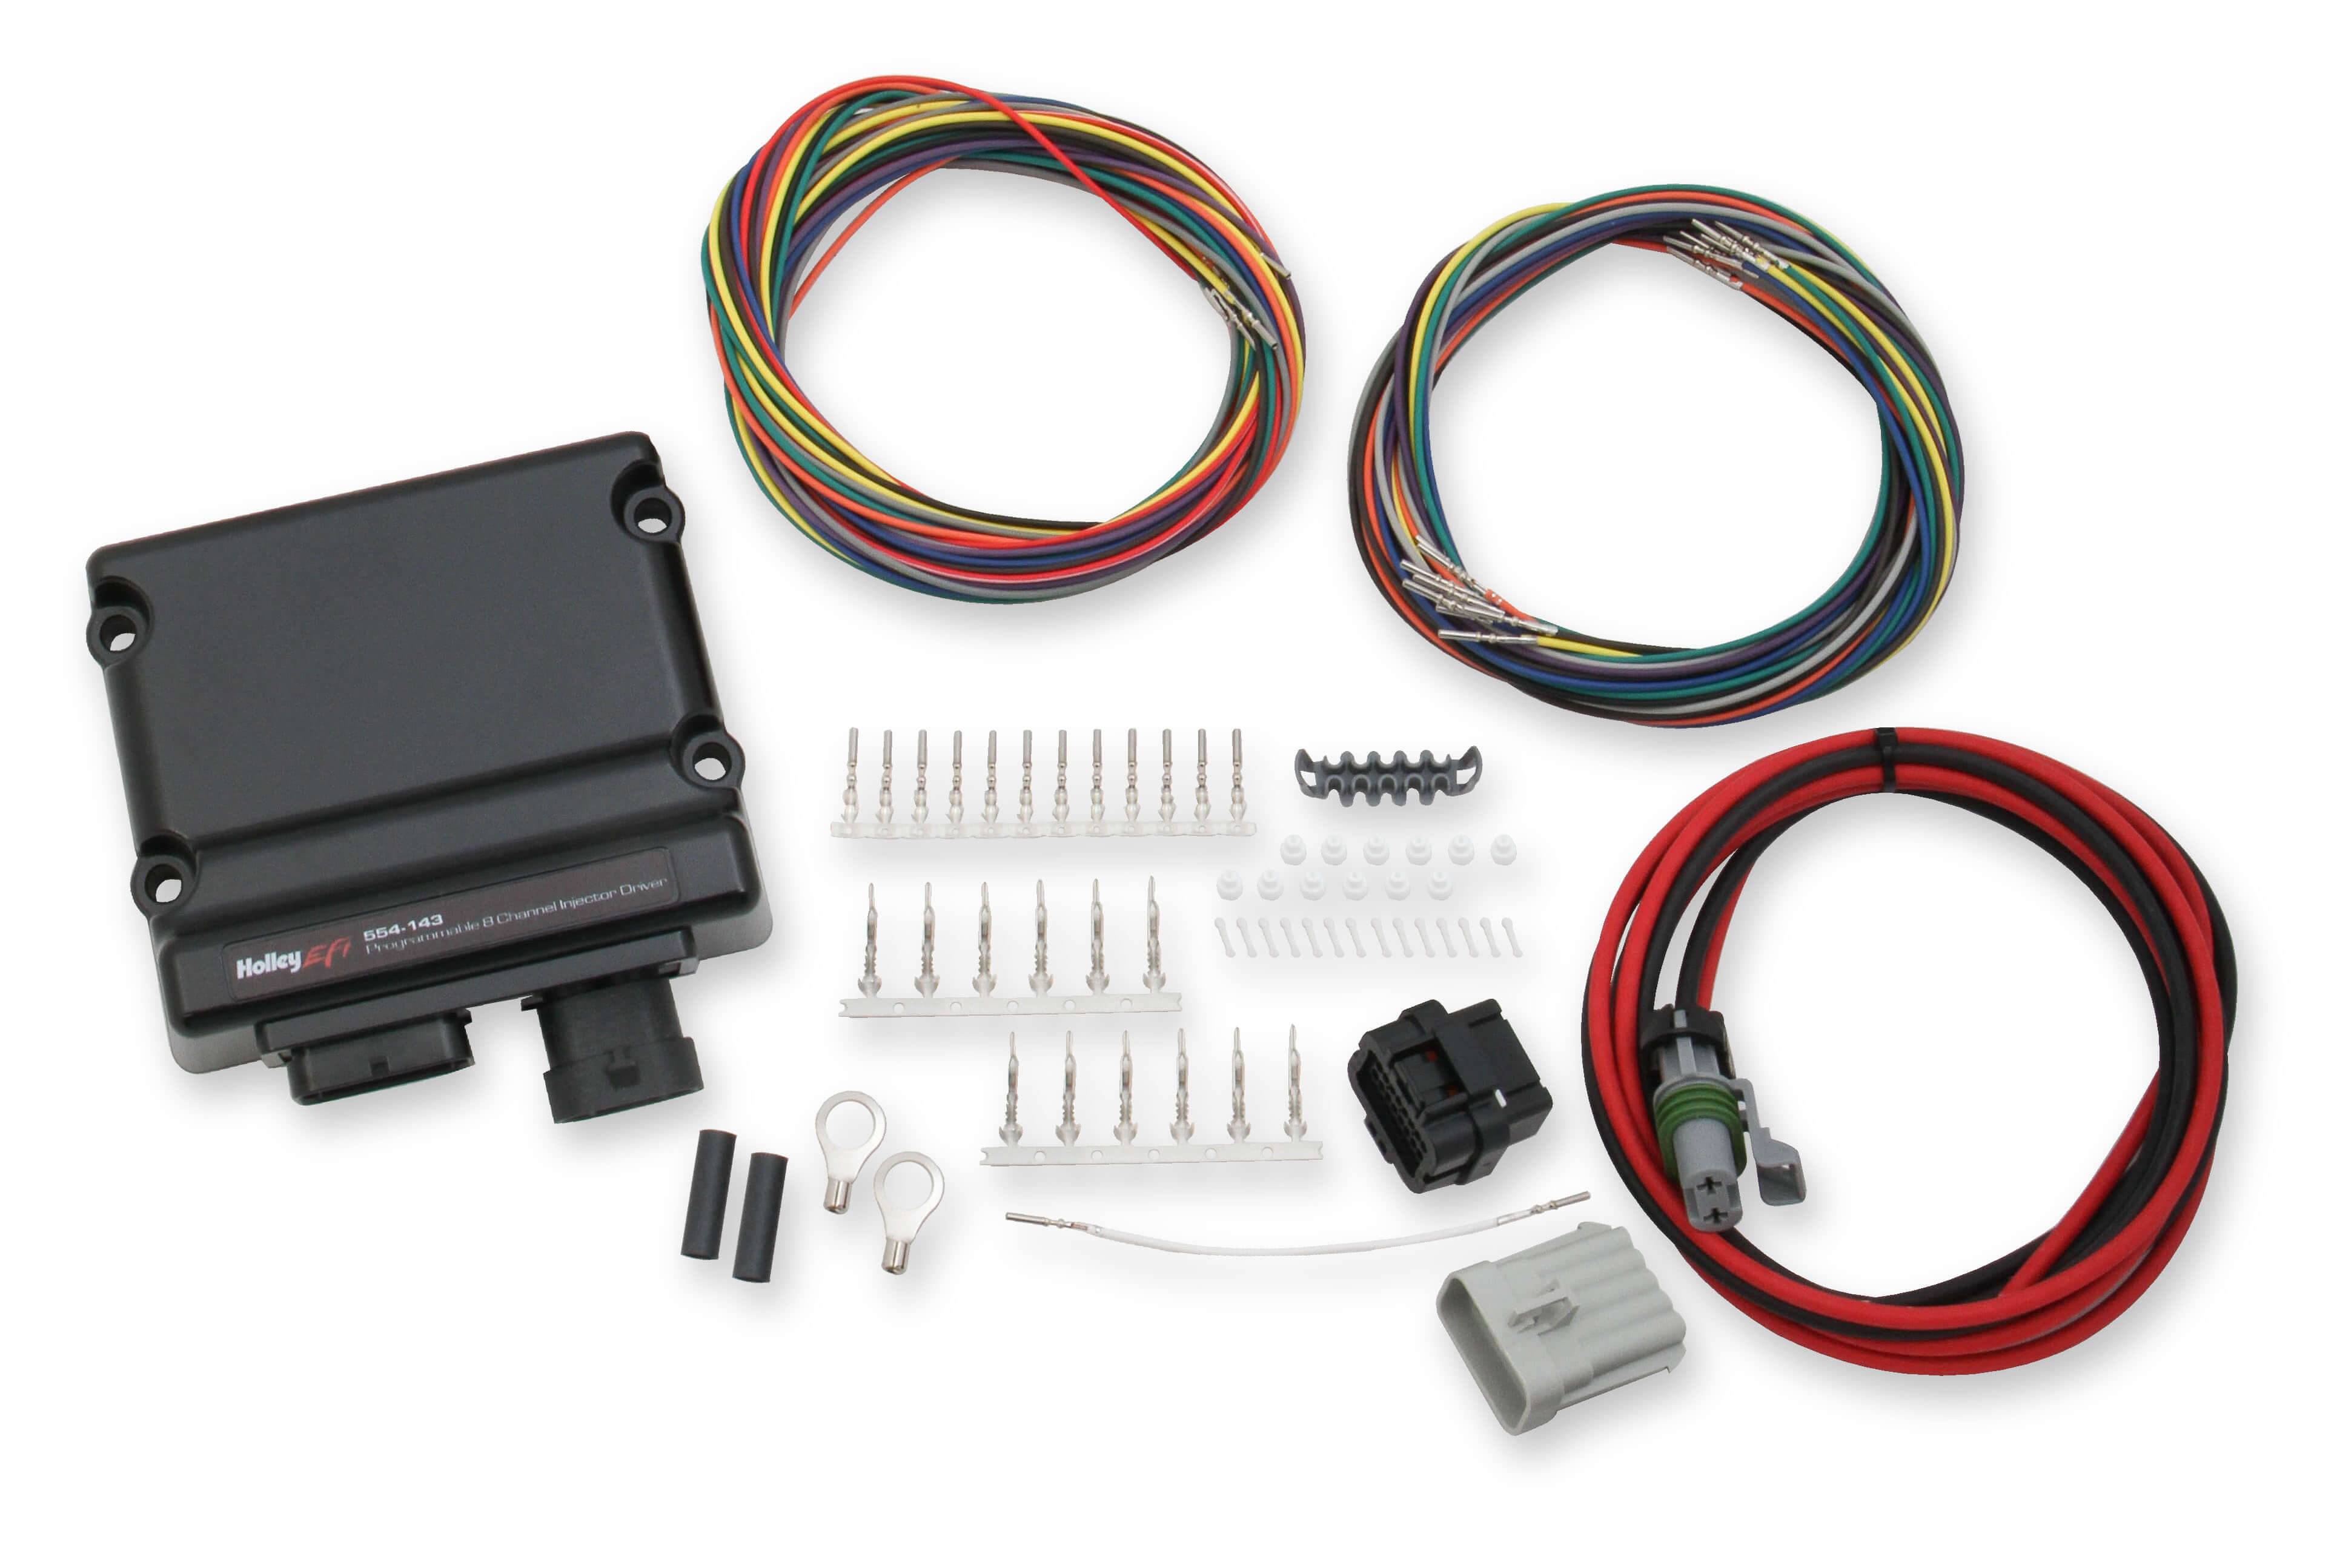 Injector Driver Module, w/ Harness